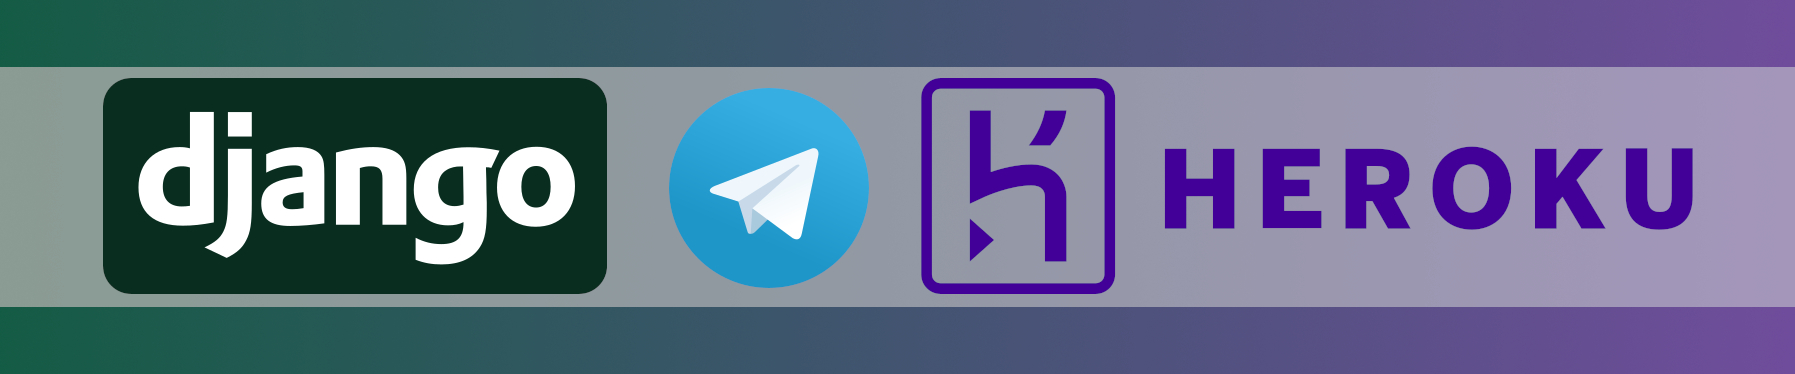 Header Image showing Django, Telegram, Heroku logos